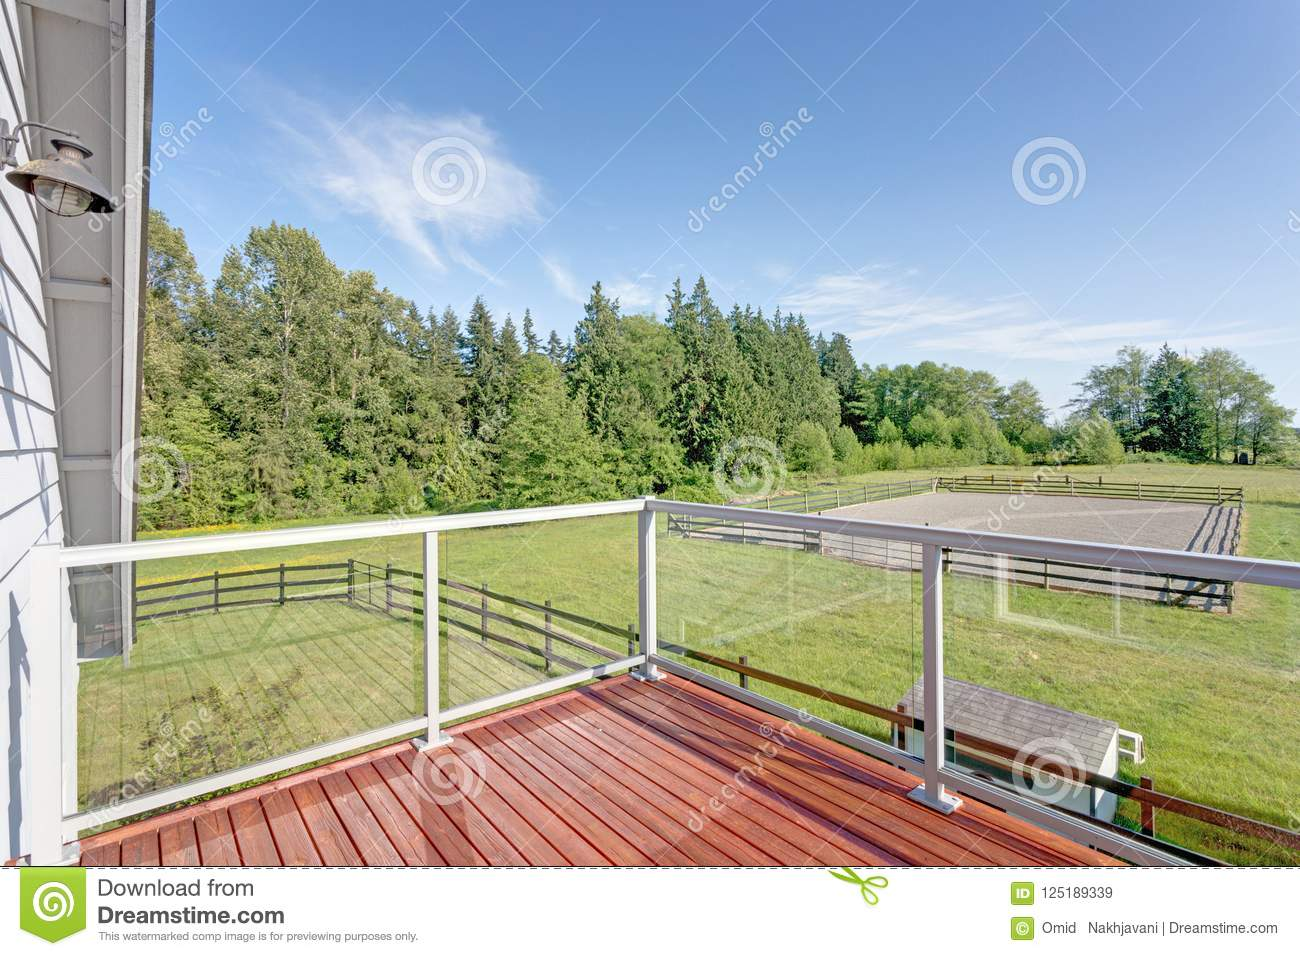 Balcony interior with picturesque view of the backyard.